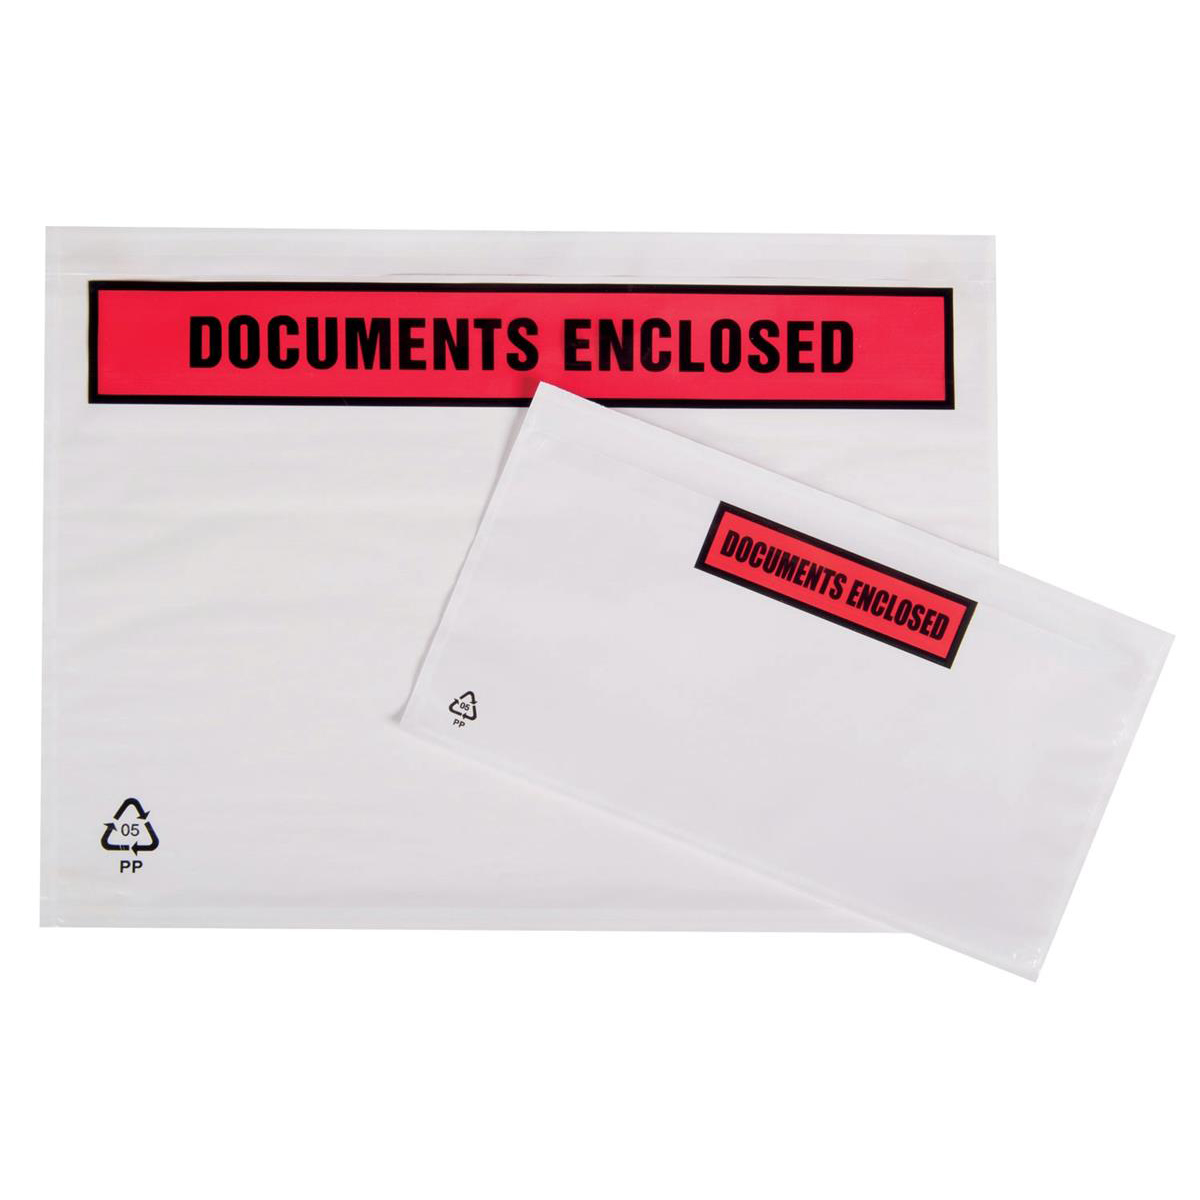 Documents Enclosed Packing List Document Wallet Polythene Documents Enclosed Printed Text A6 158x110mm White Pack 1000